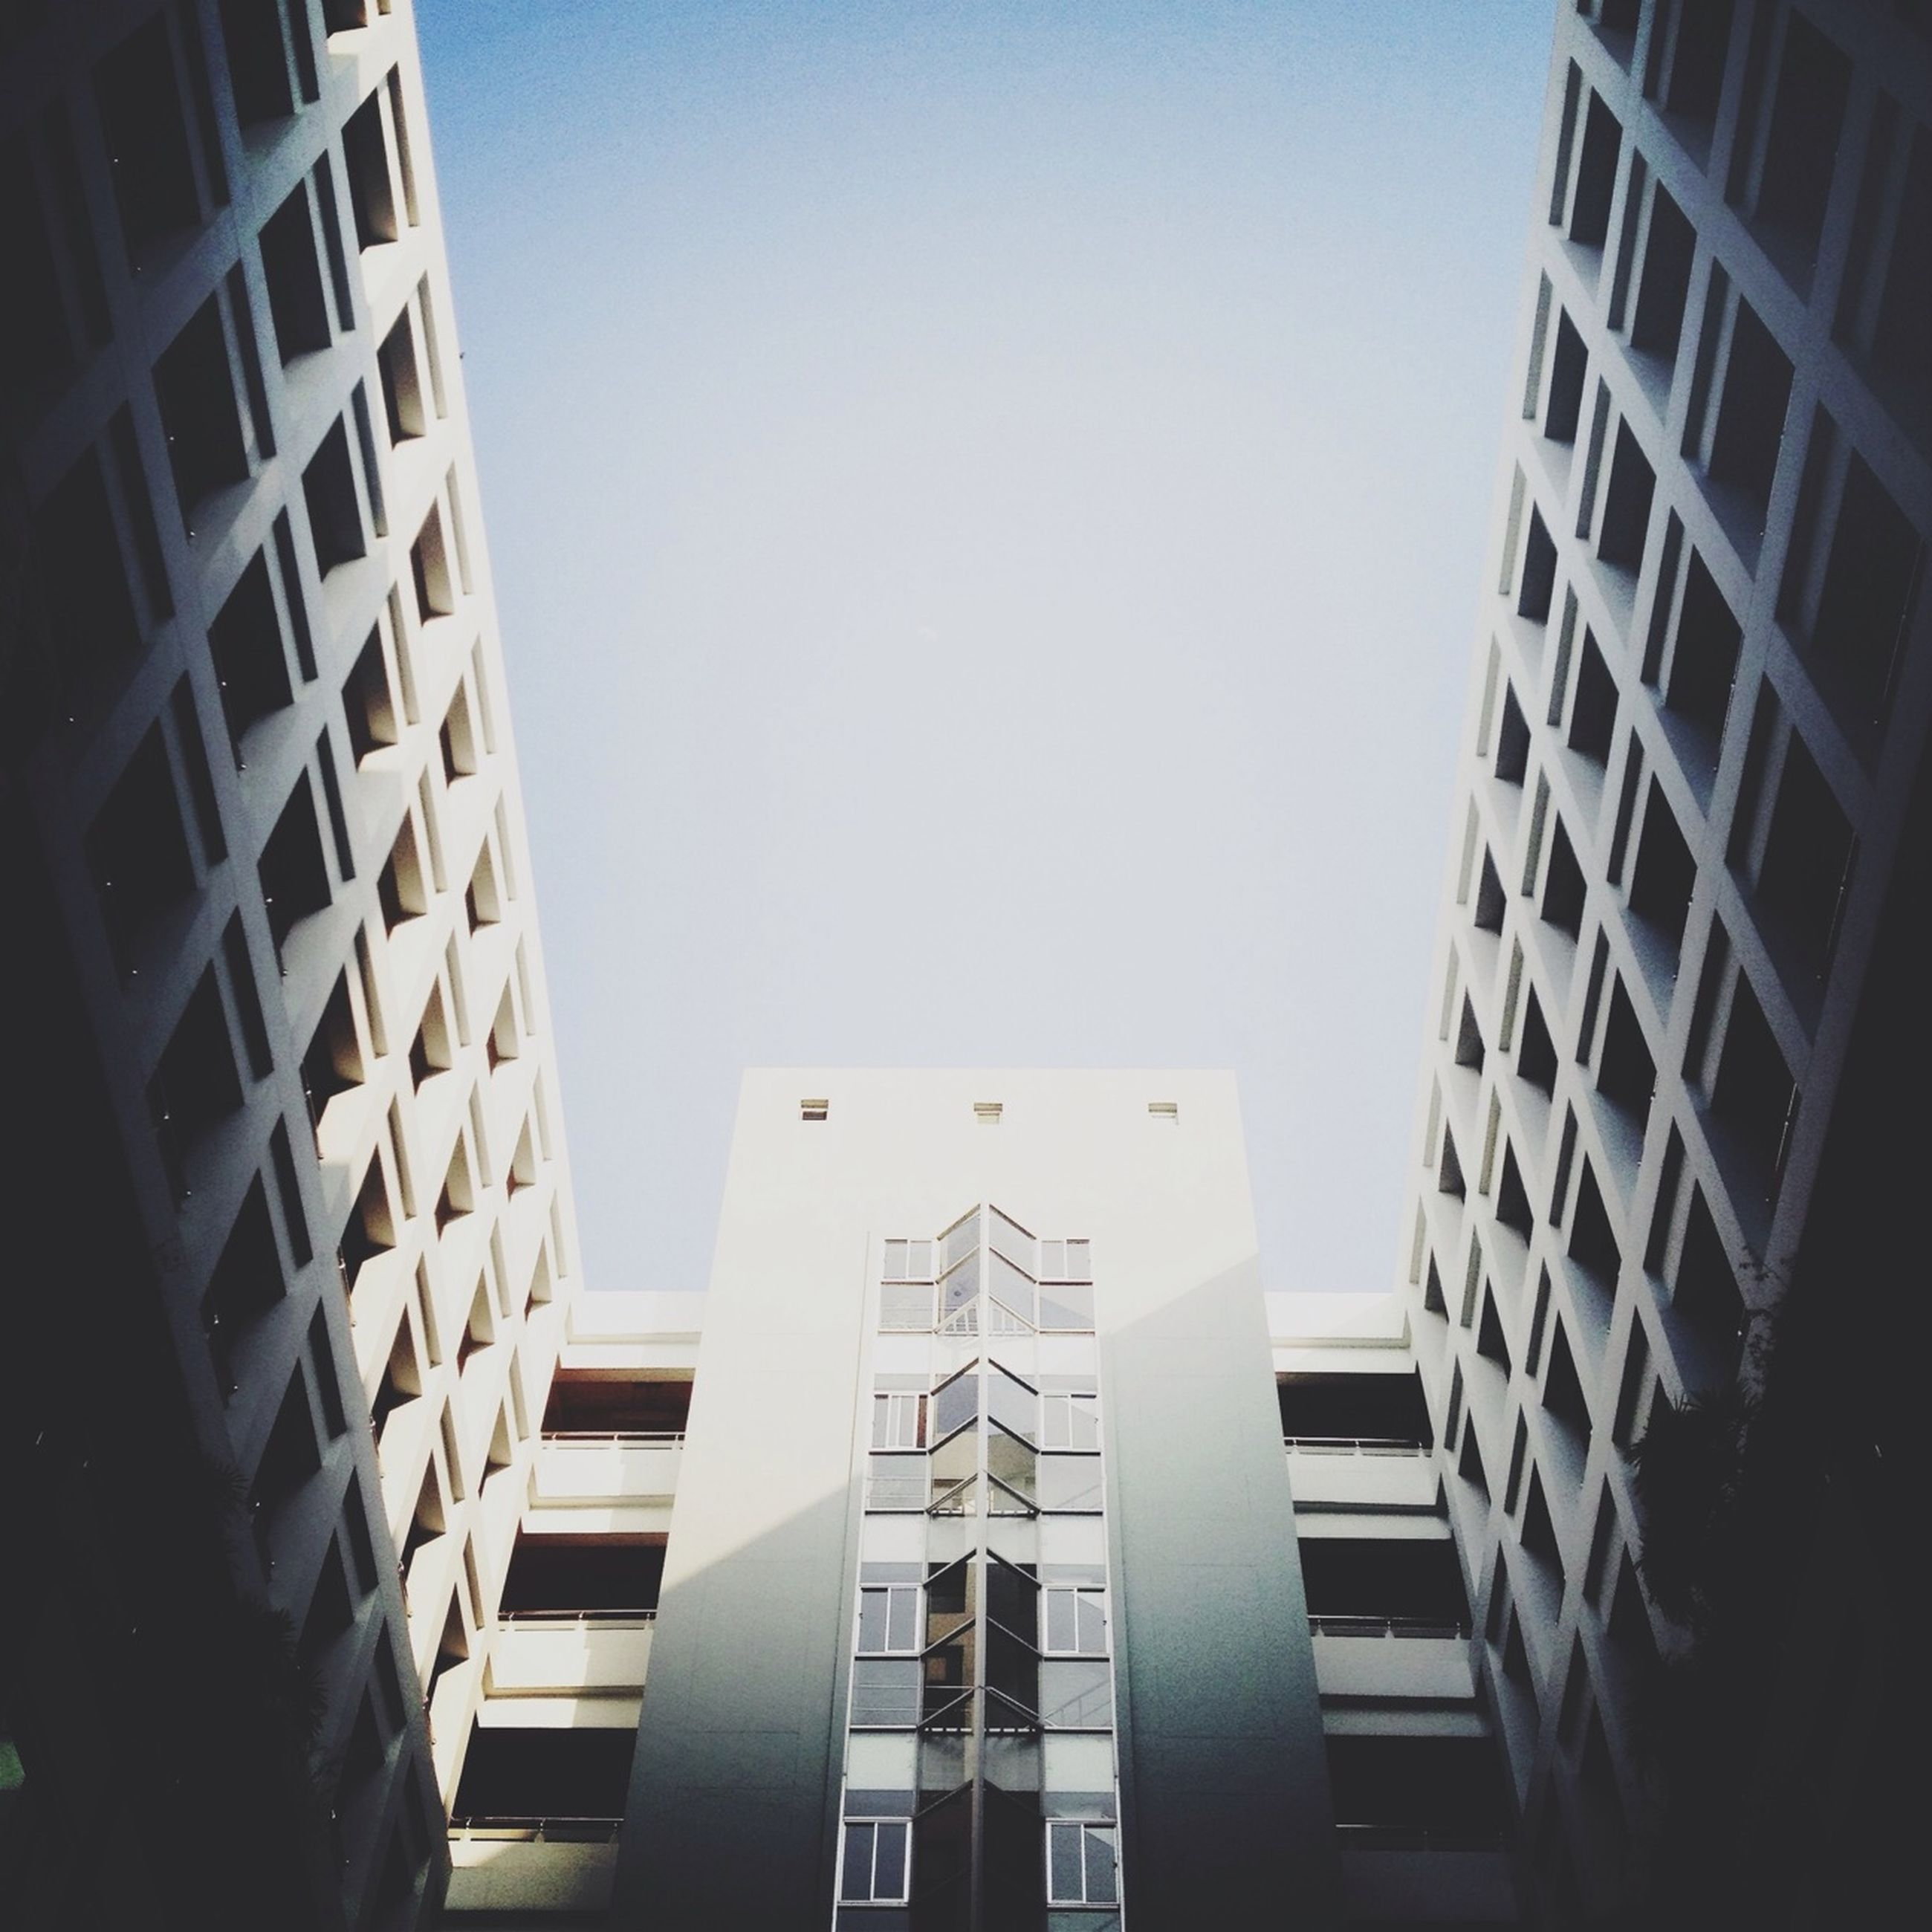 architecture, built structure, building exterior, low angle view, clear sky, window, modern, building, office building, city, glass - material, copy space, tall - high, day, sky, outdoors, no people, tower, blue, skyscraper